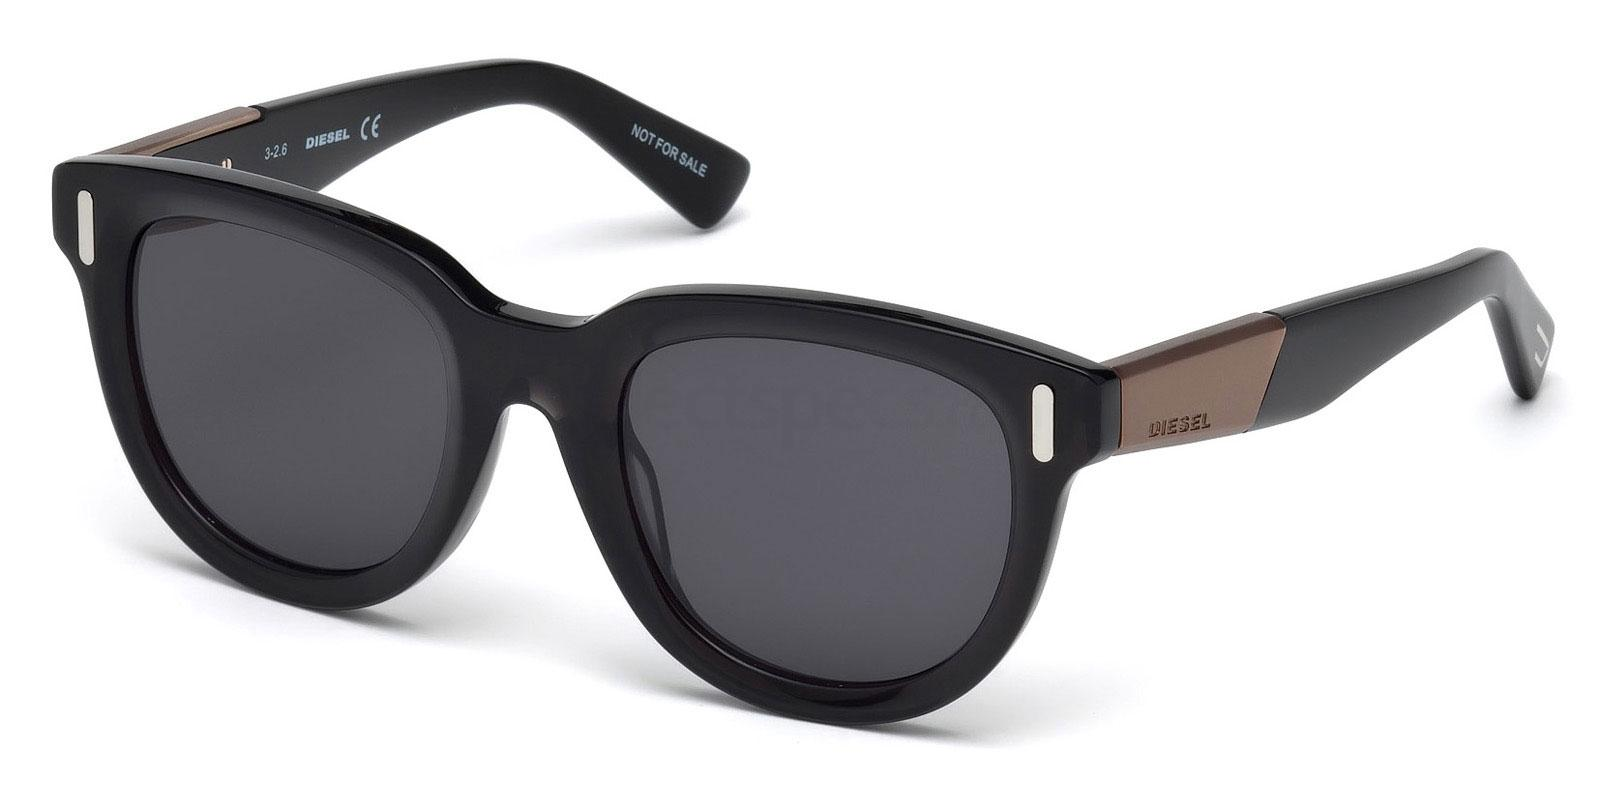 01A DL0228 Sunglasses, Diesel